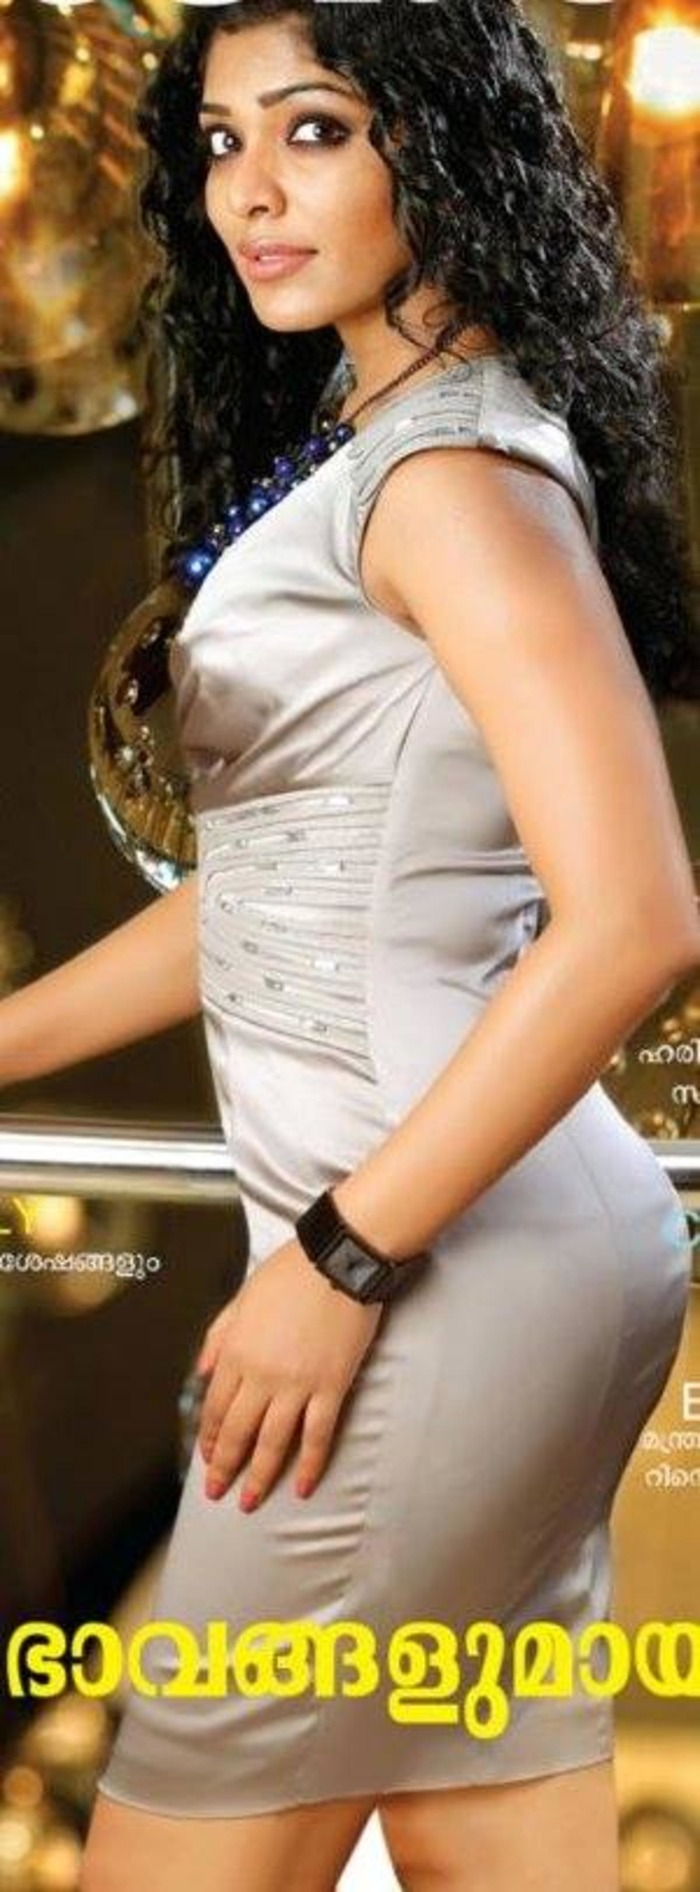 charming women of south indian movies - indiatimes